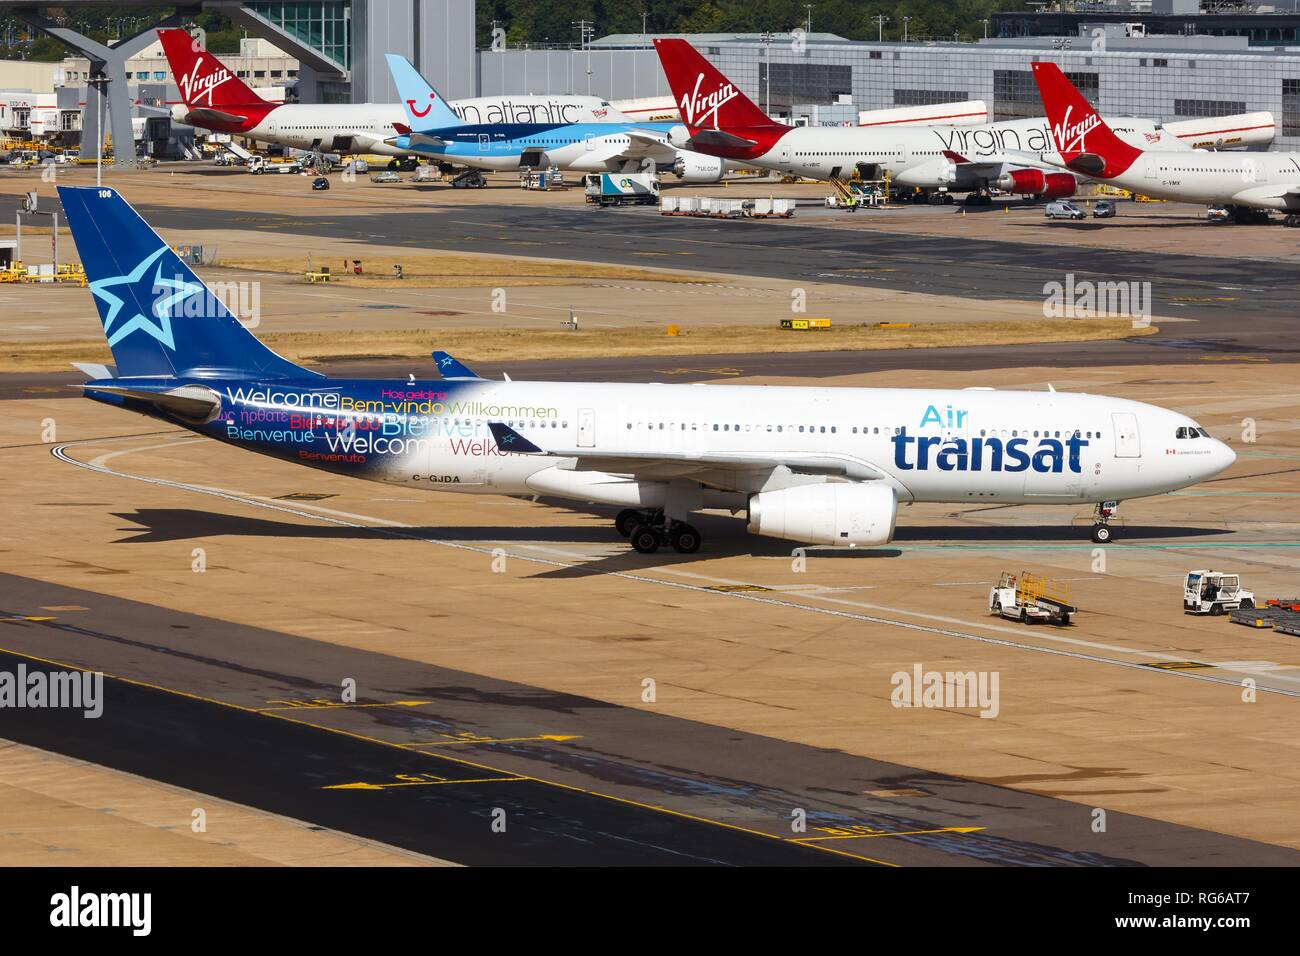 London, United Kingdom - July 31, 2018: Air Transat Airbus A330 airplane at London Gatwick airport (LGW) in the United Kingdom. | usage worldwide - Stock Image